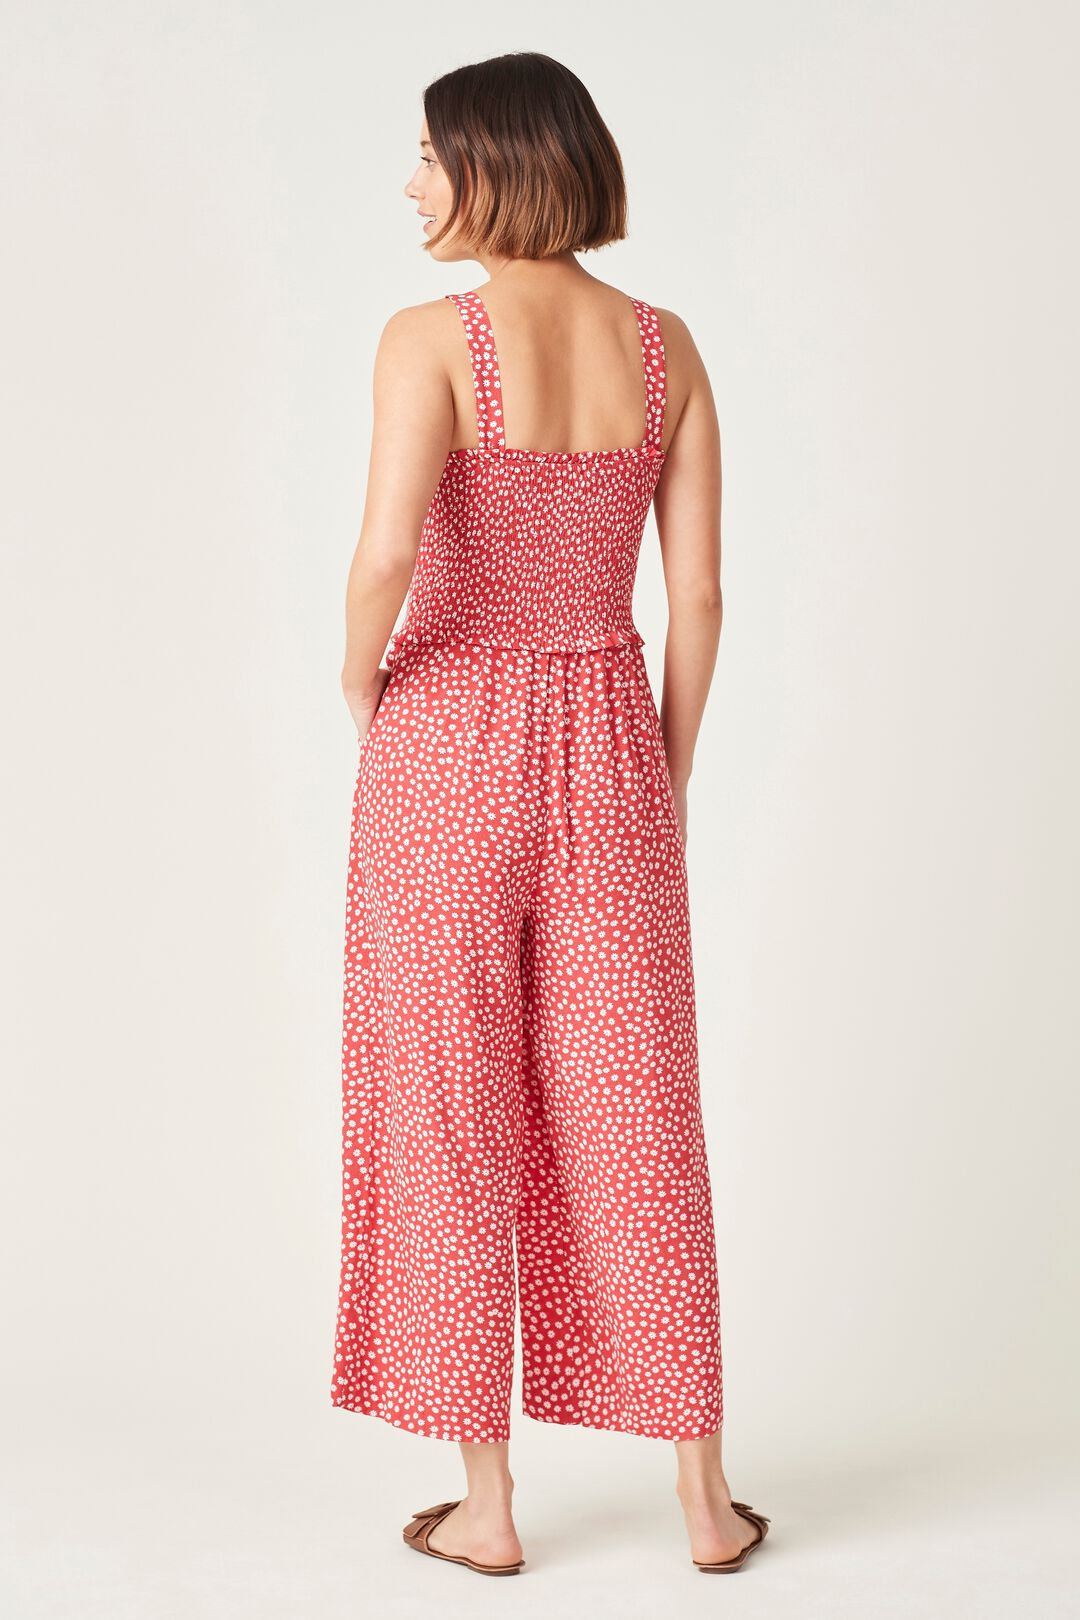 SHIRRED BODICE JUMPSUIT  WASHED RED/WHITE  hi-res